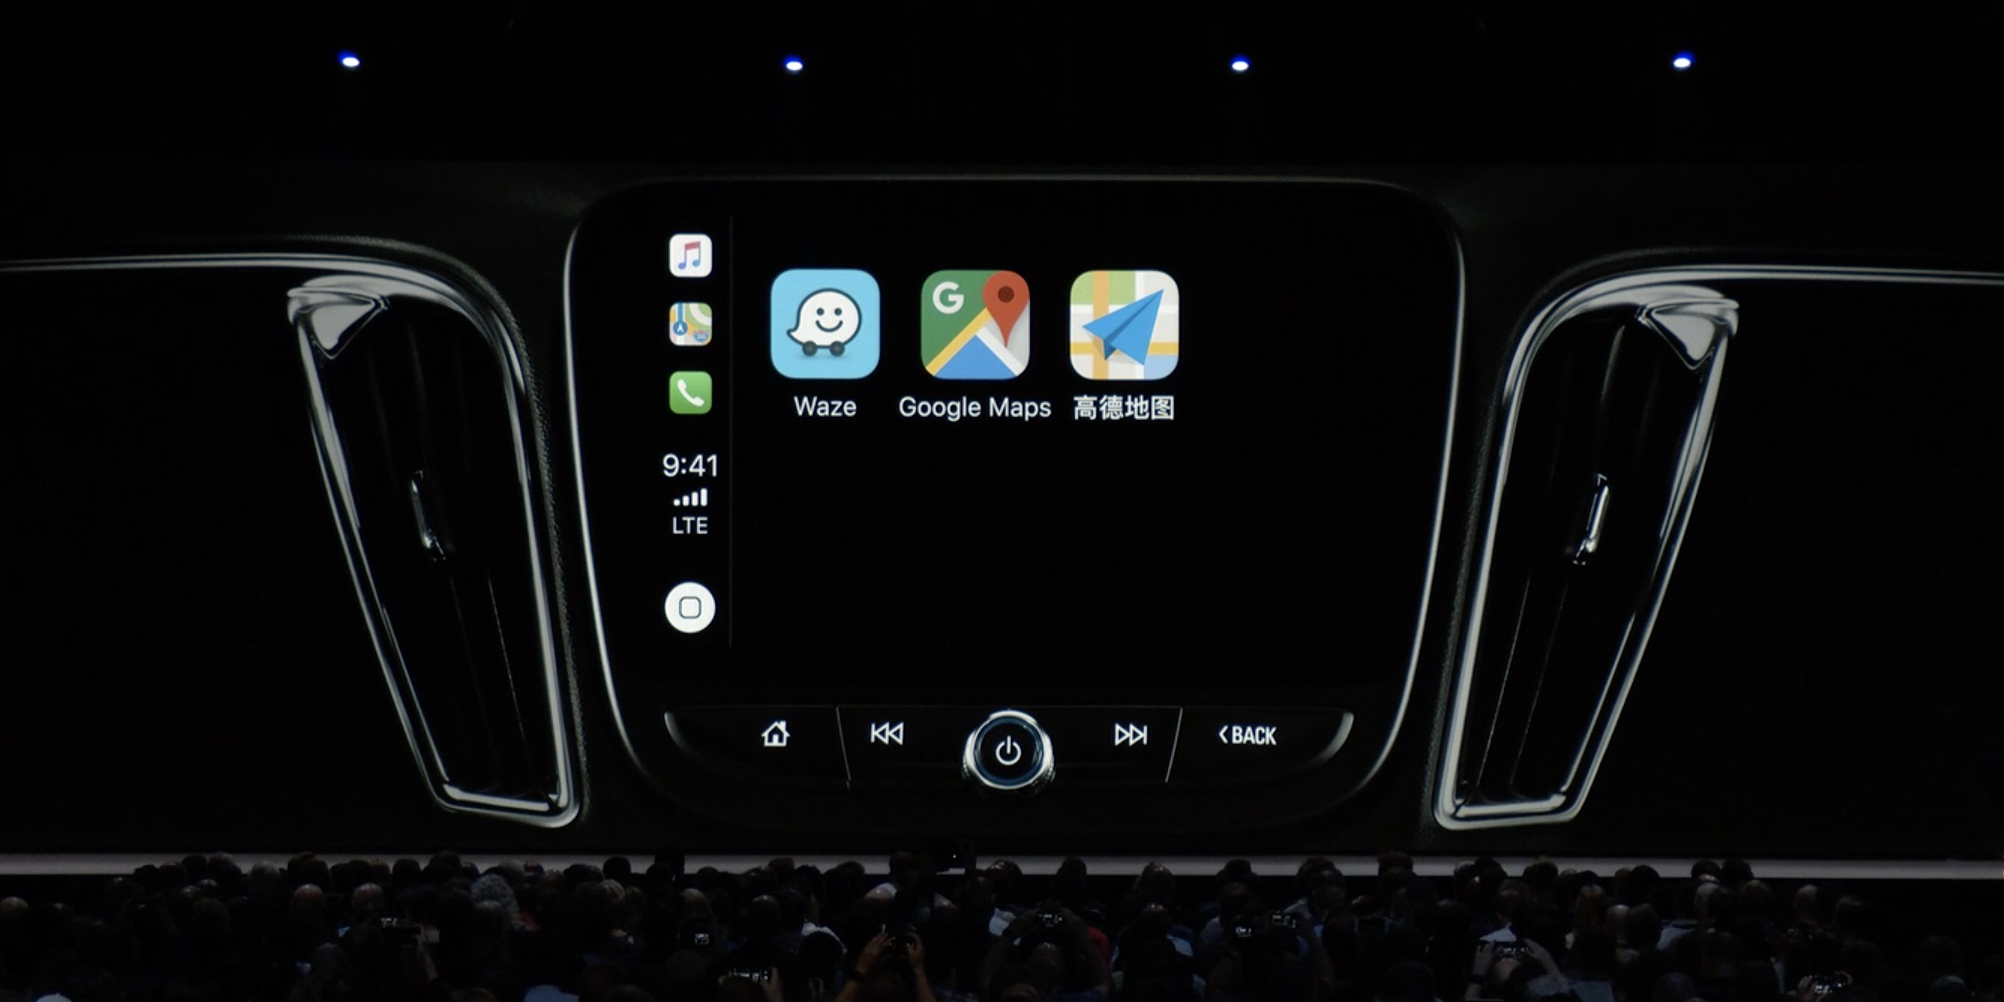 Waze begins private beta testing of CarPlay iOS 12 update